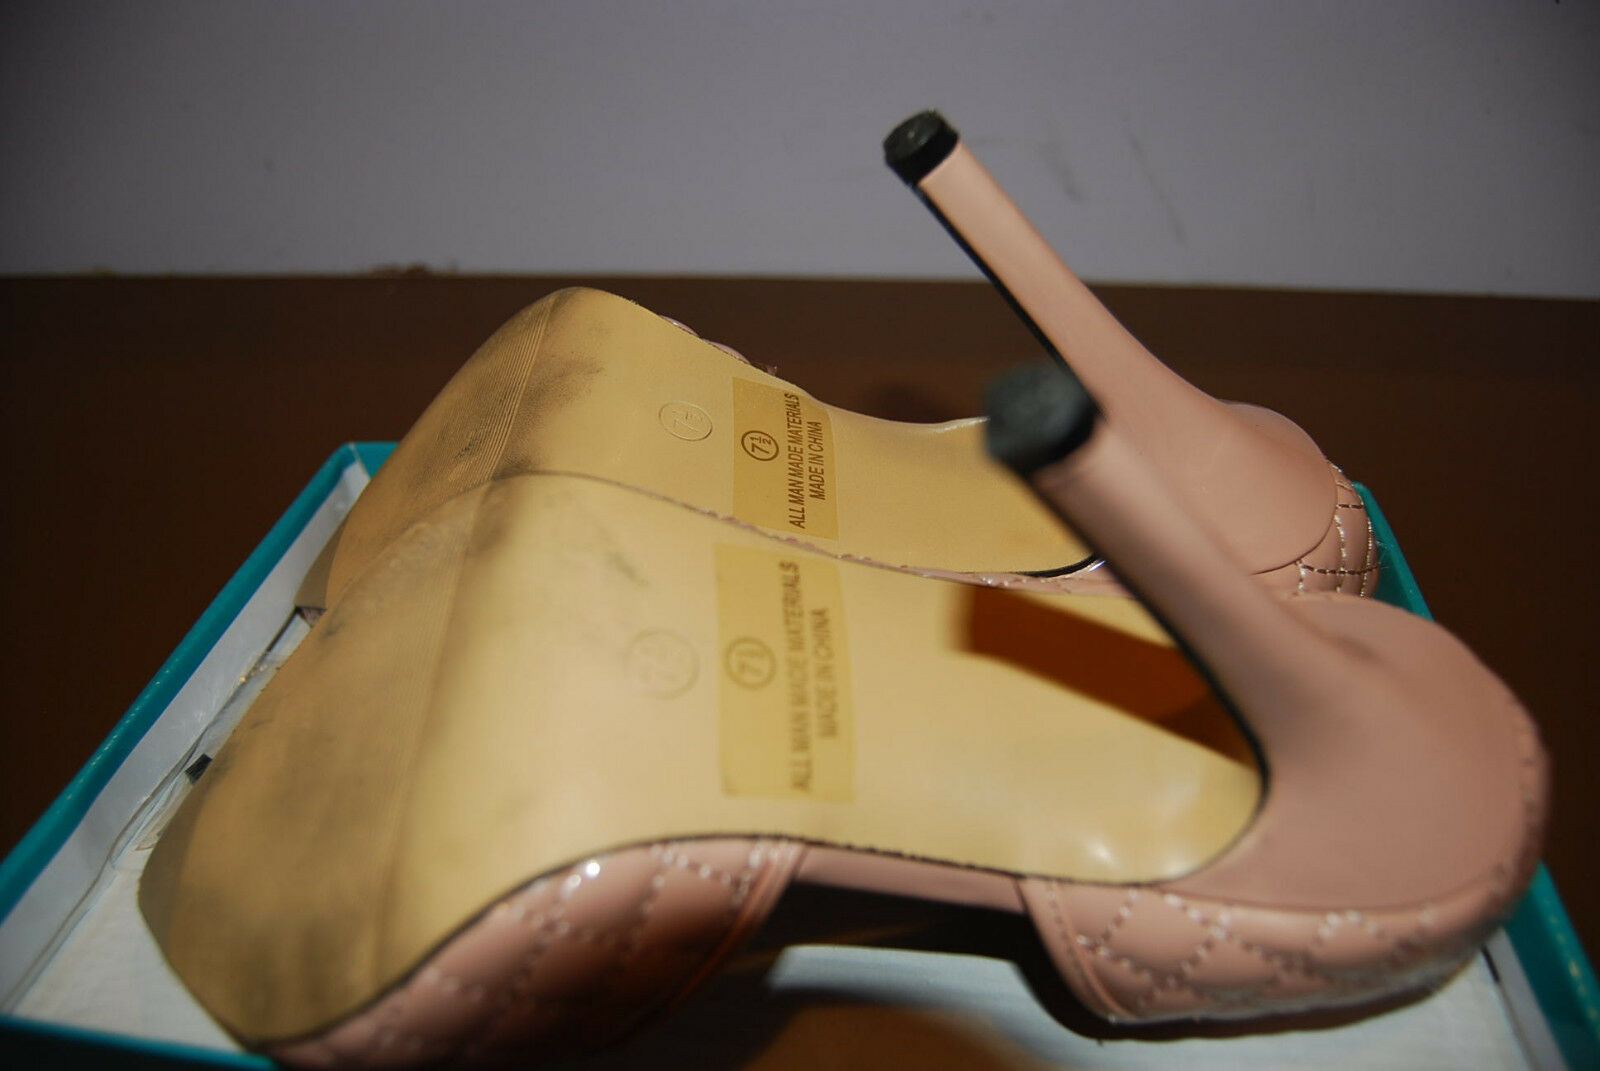 Easos Geal Pink Pink Pink Quilted Pump Size US 7.5M - 3 Inch Heal - Have Box as well. 19a910